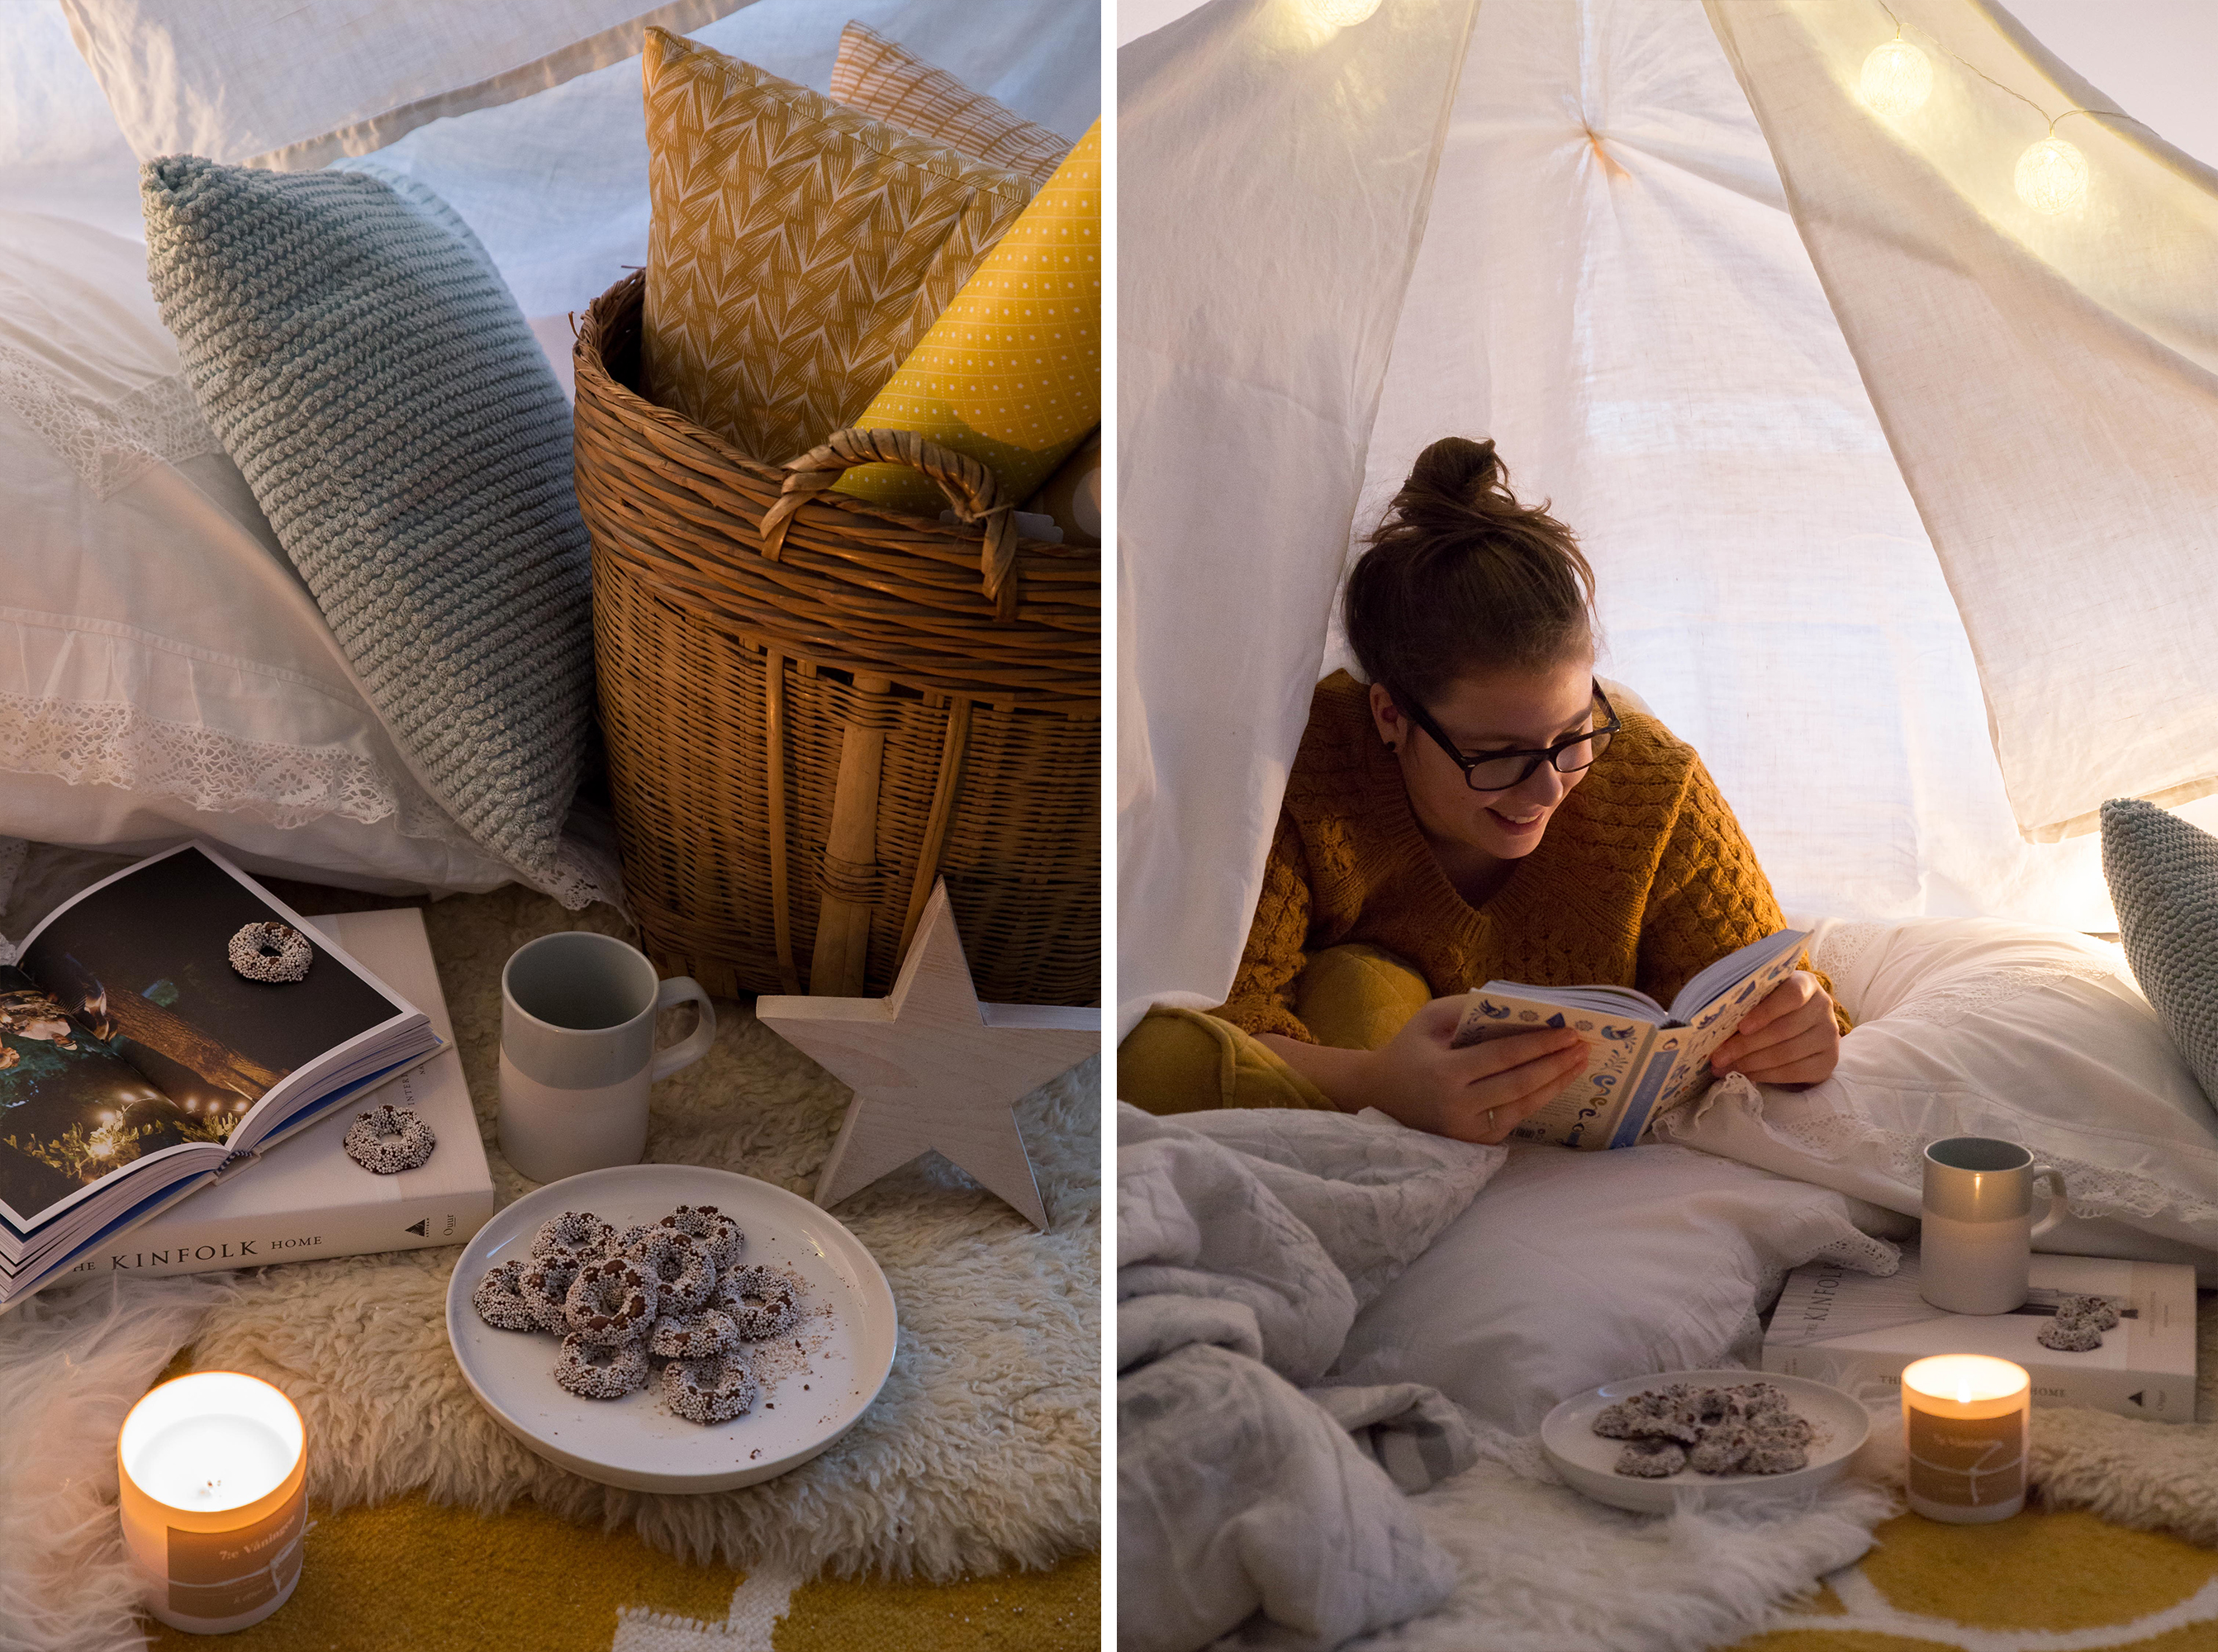 blanket fort grown-ups, mindfulness, slow down, that sunday feeling